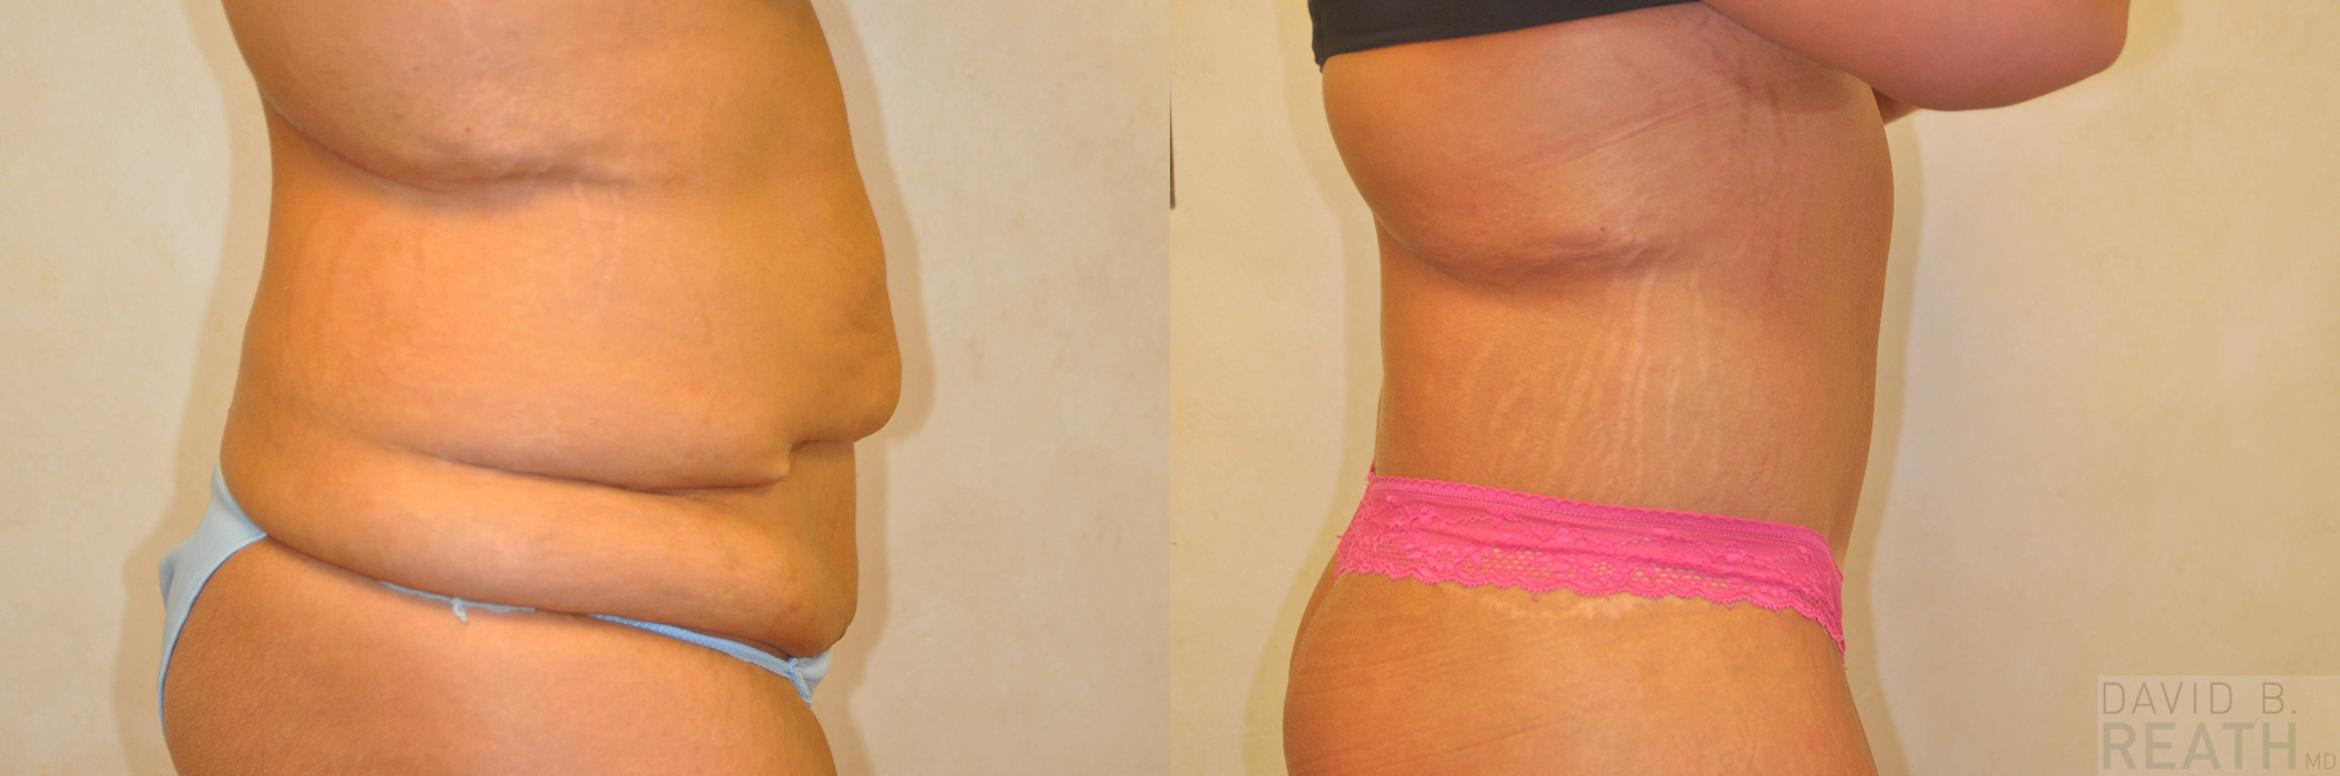 Body Lift Before & After Photo | Knoxville, Tennessee | David B. Reath, MD